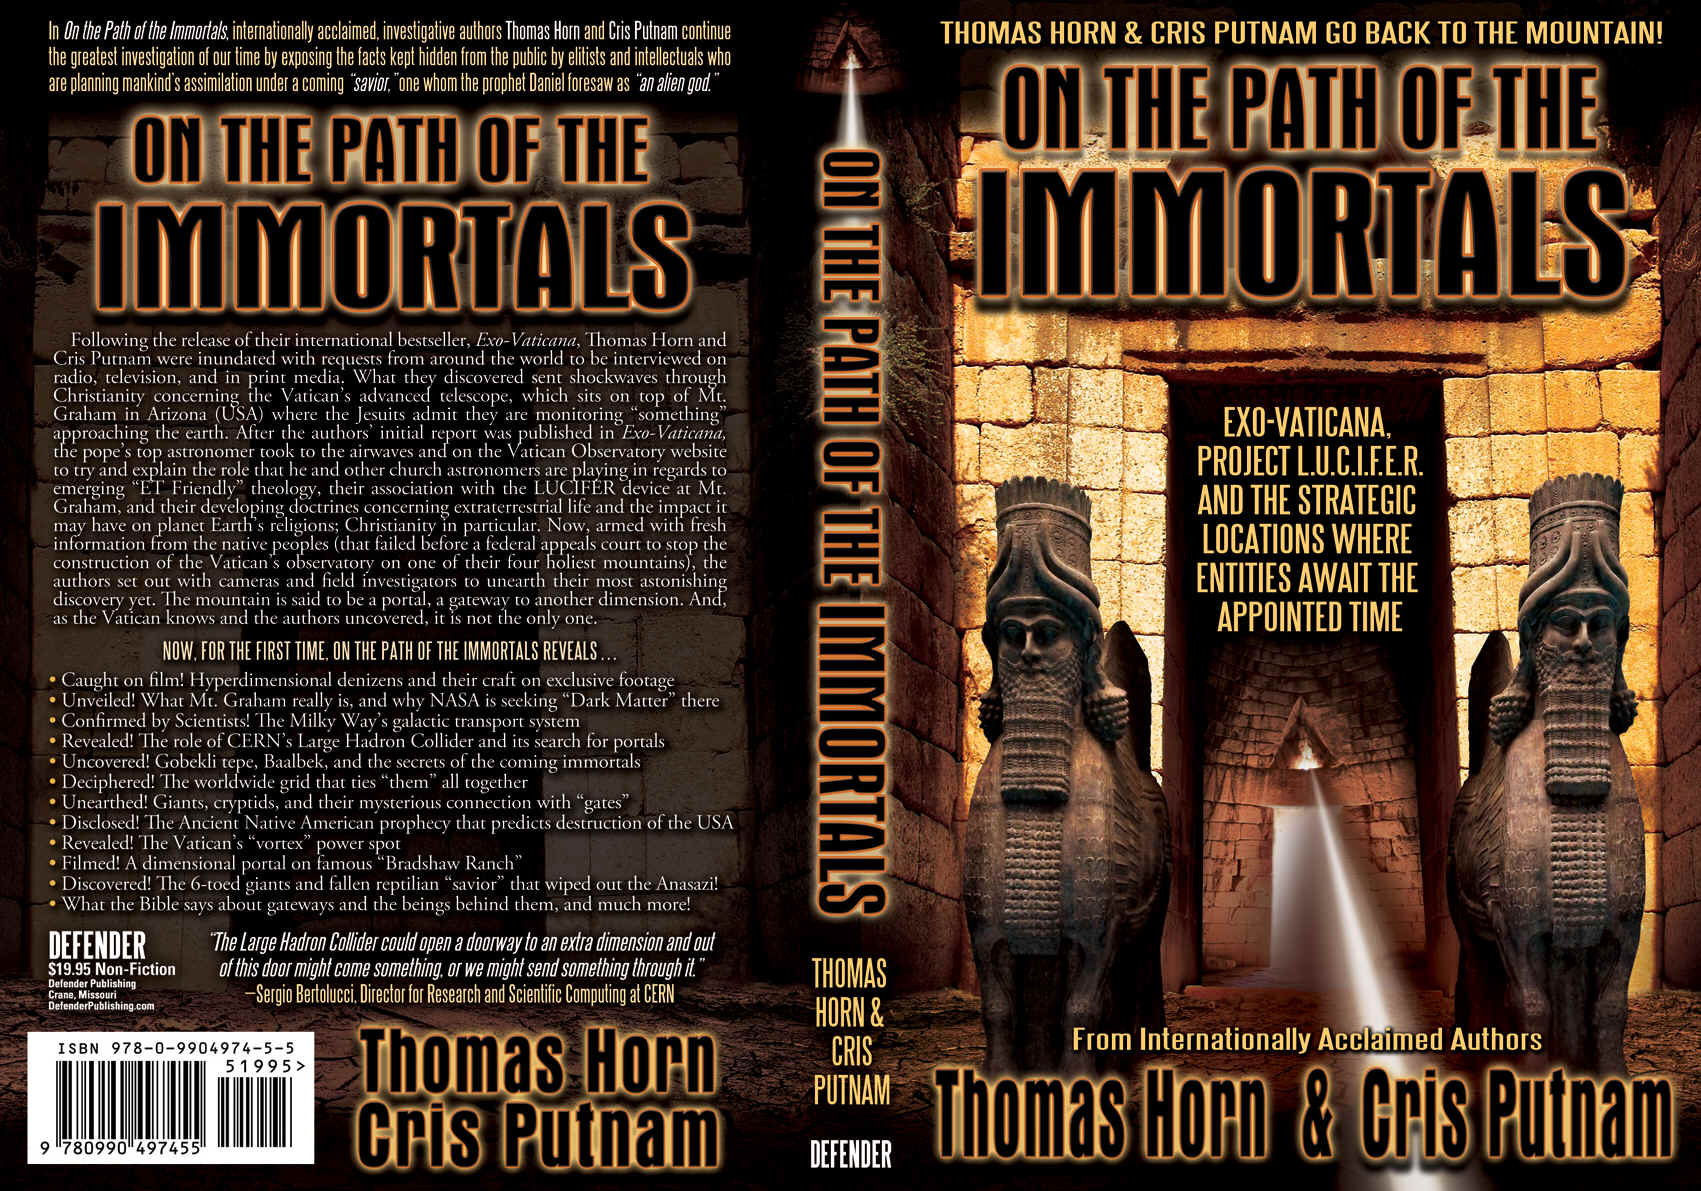 COMING IN MAY -- ON THE PATH OF THE IMMORTALS!